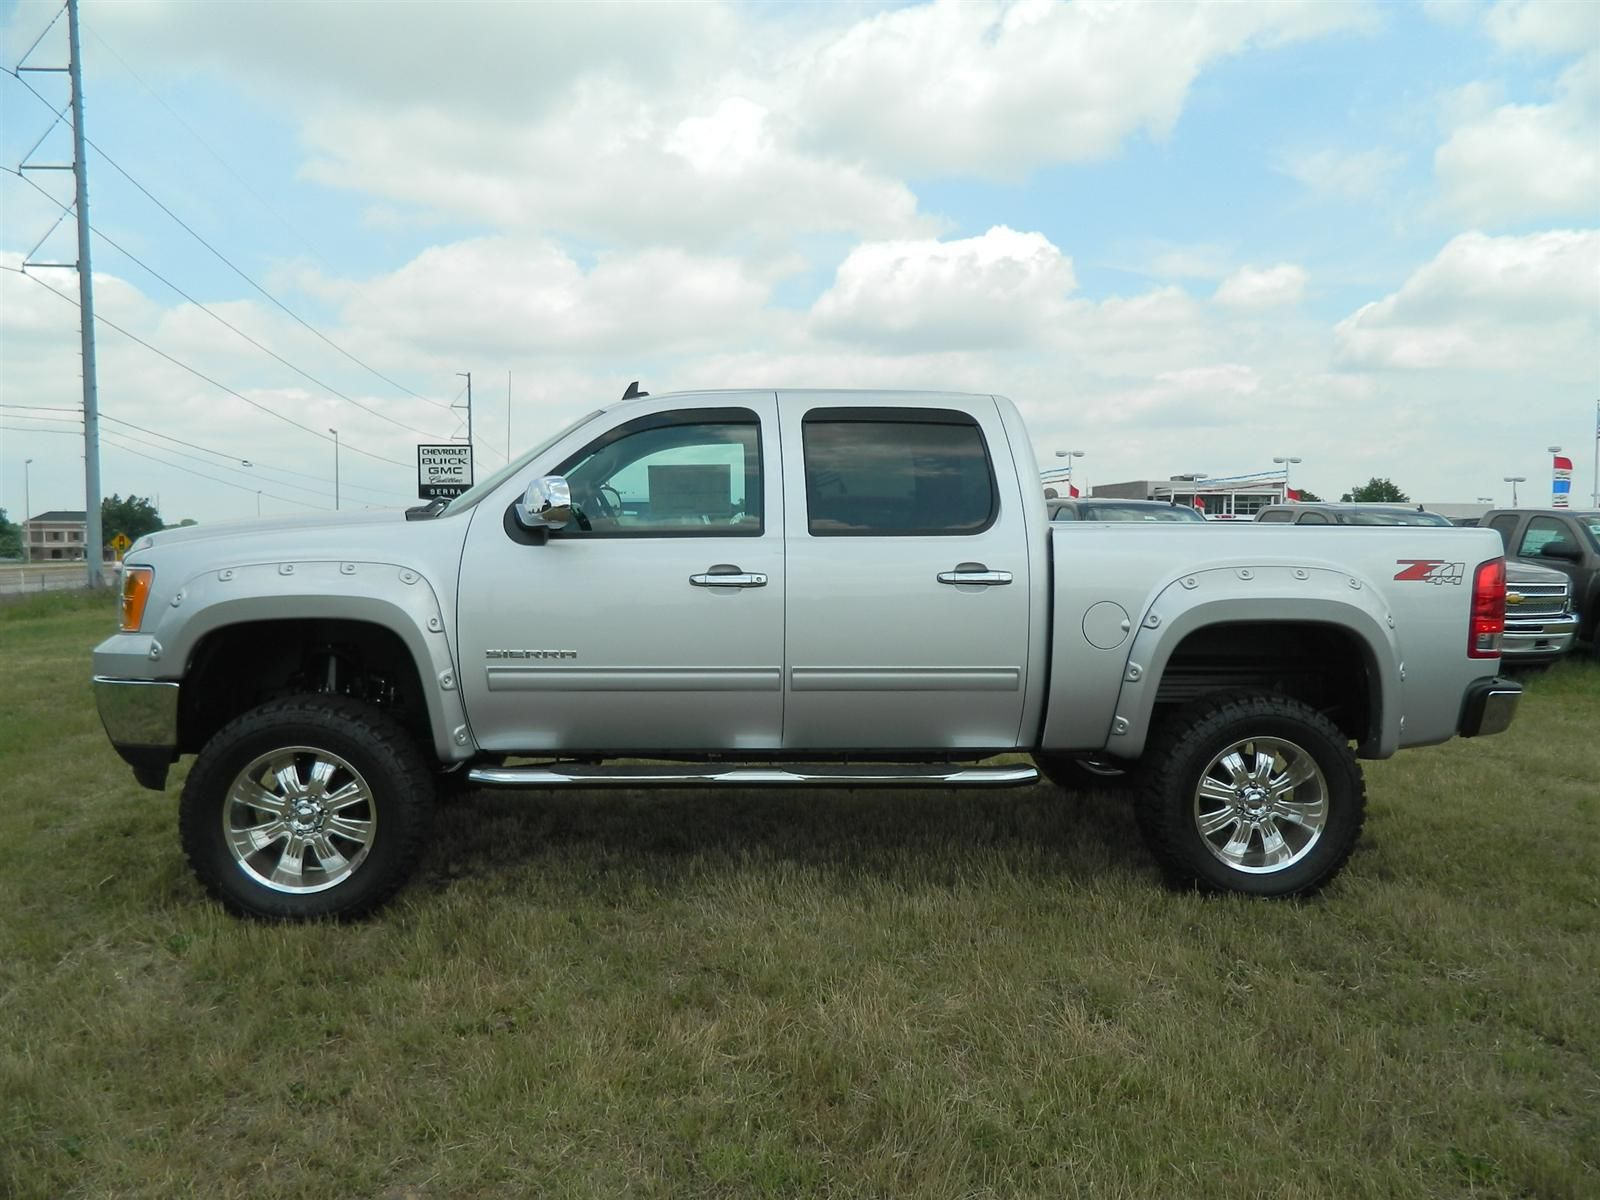 New 2012 Gmc Sierra 1500 Rocky Ridge Conversion For Sale In